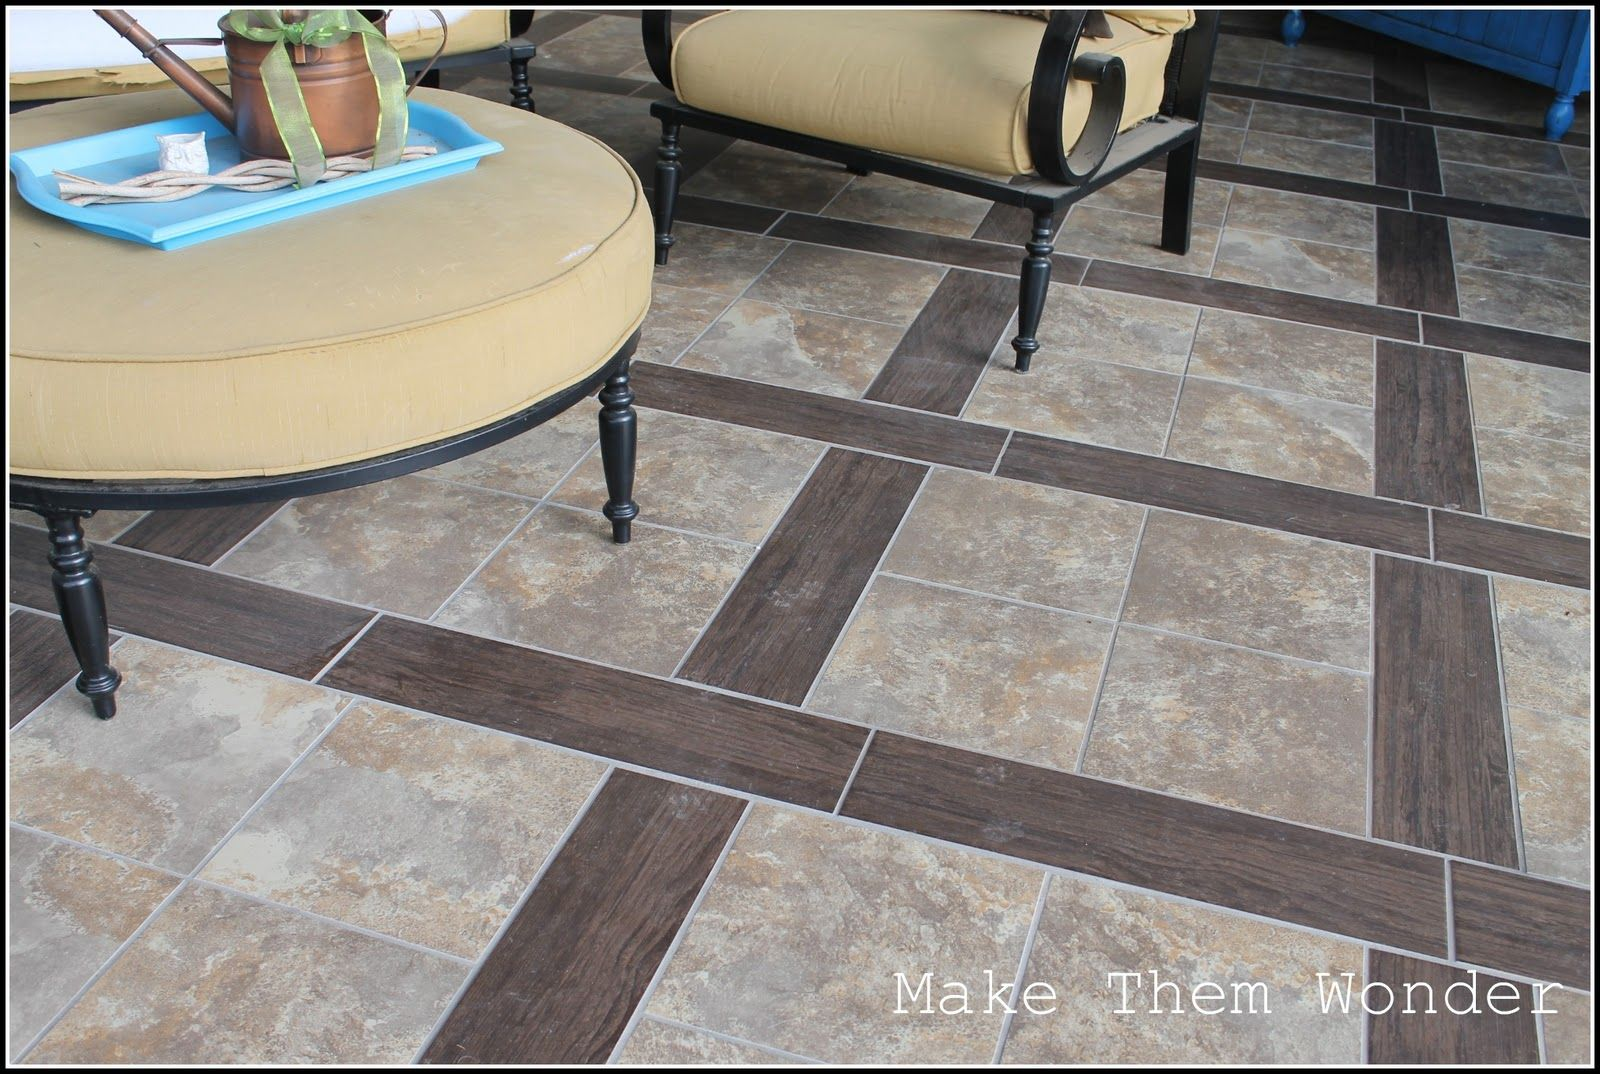 Outdoor Tile That Looks Like Wood Patio Design With Stamped Concrete Tile That Looks Like Wood